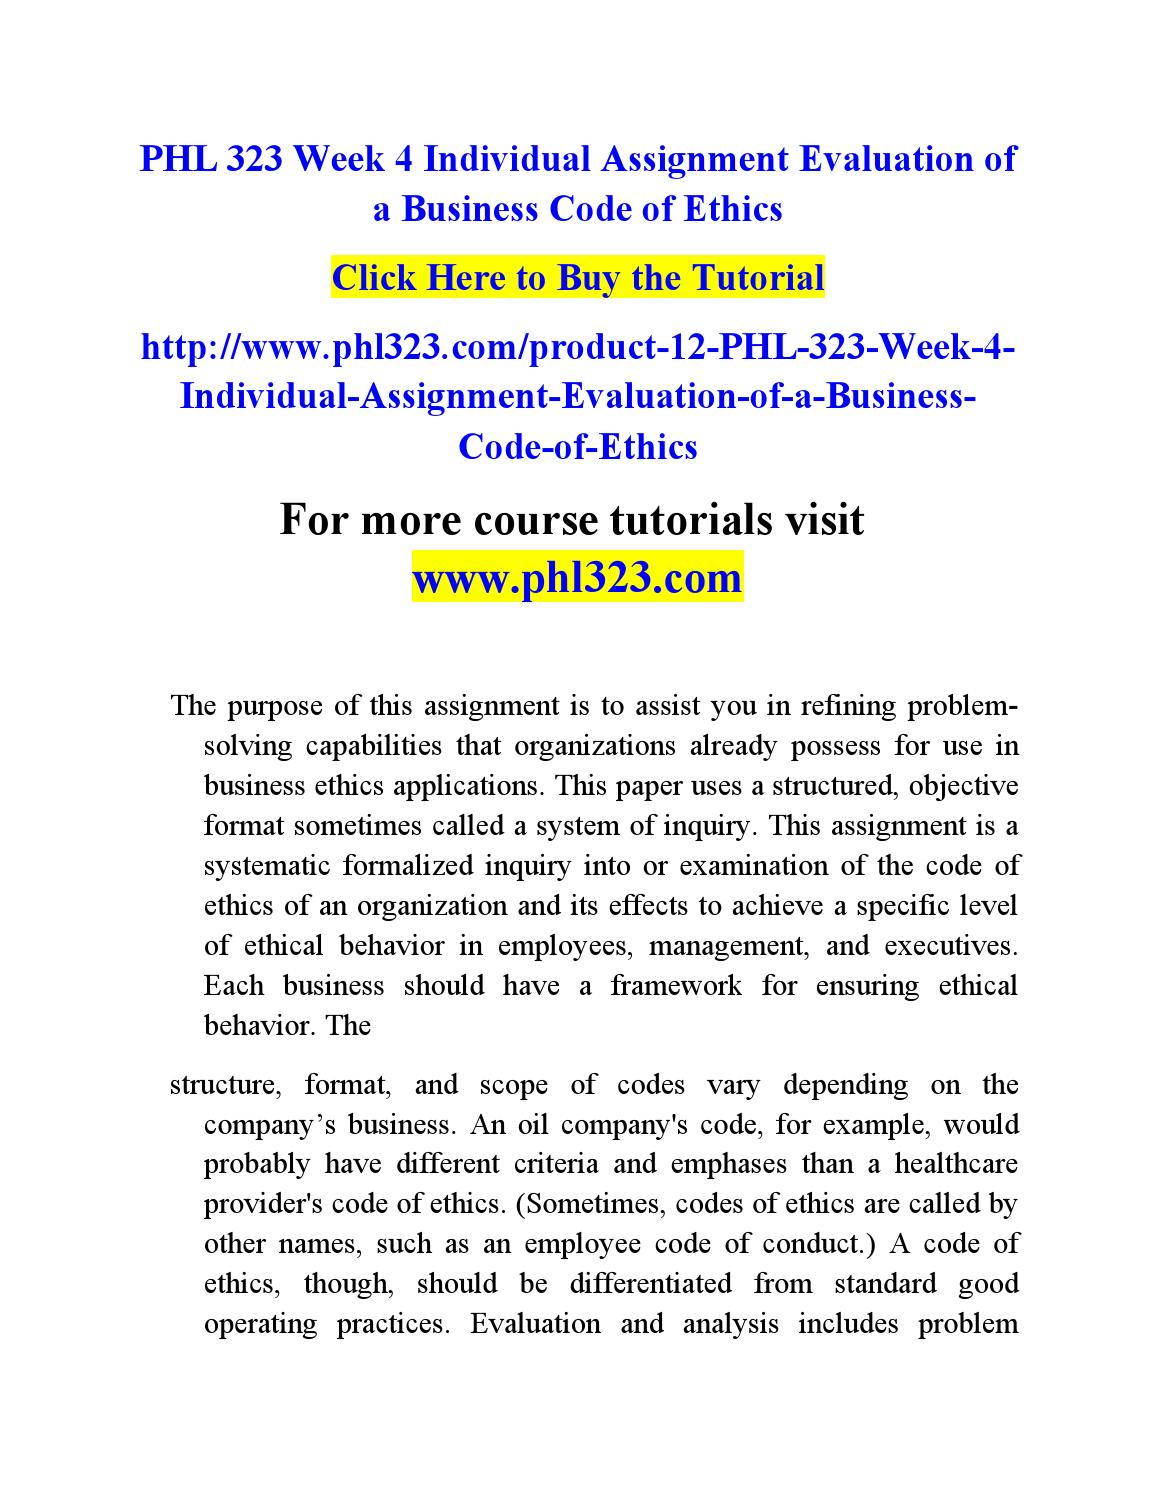 evaluation of a business code of ethics paper phl 323 Free essay: first energy and the business code of ethics phl/323 march 7, 2011 first energy and the business code of ethics first energy prides itself on the.